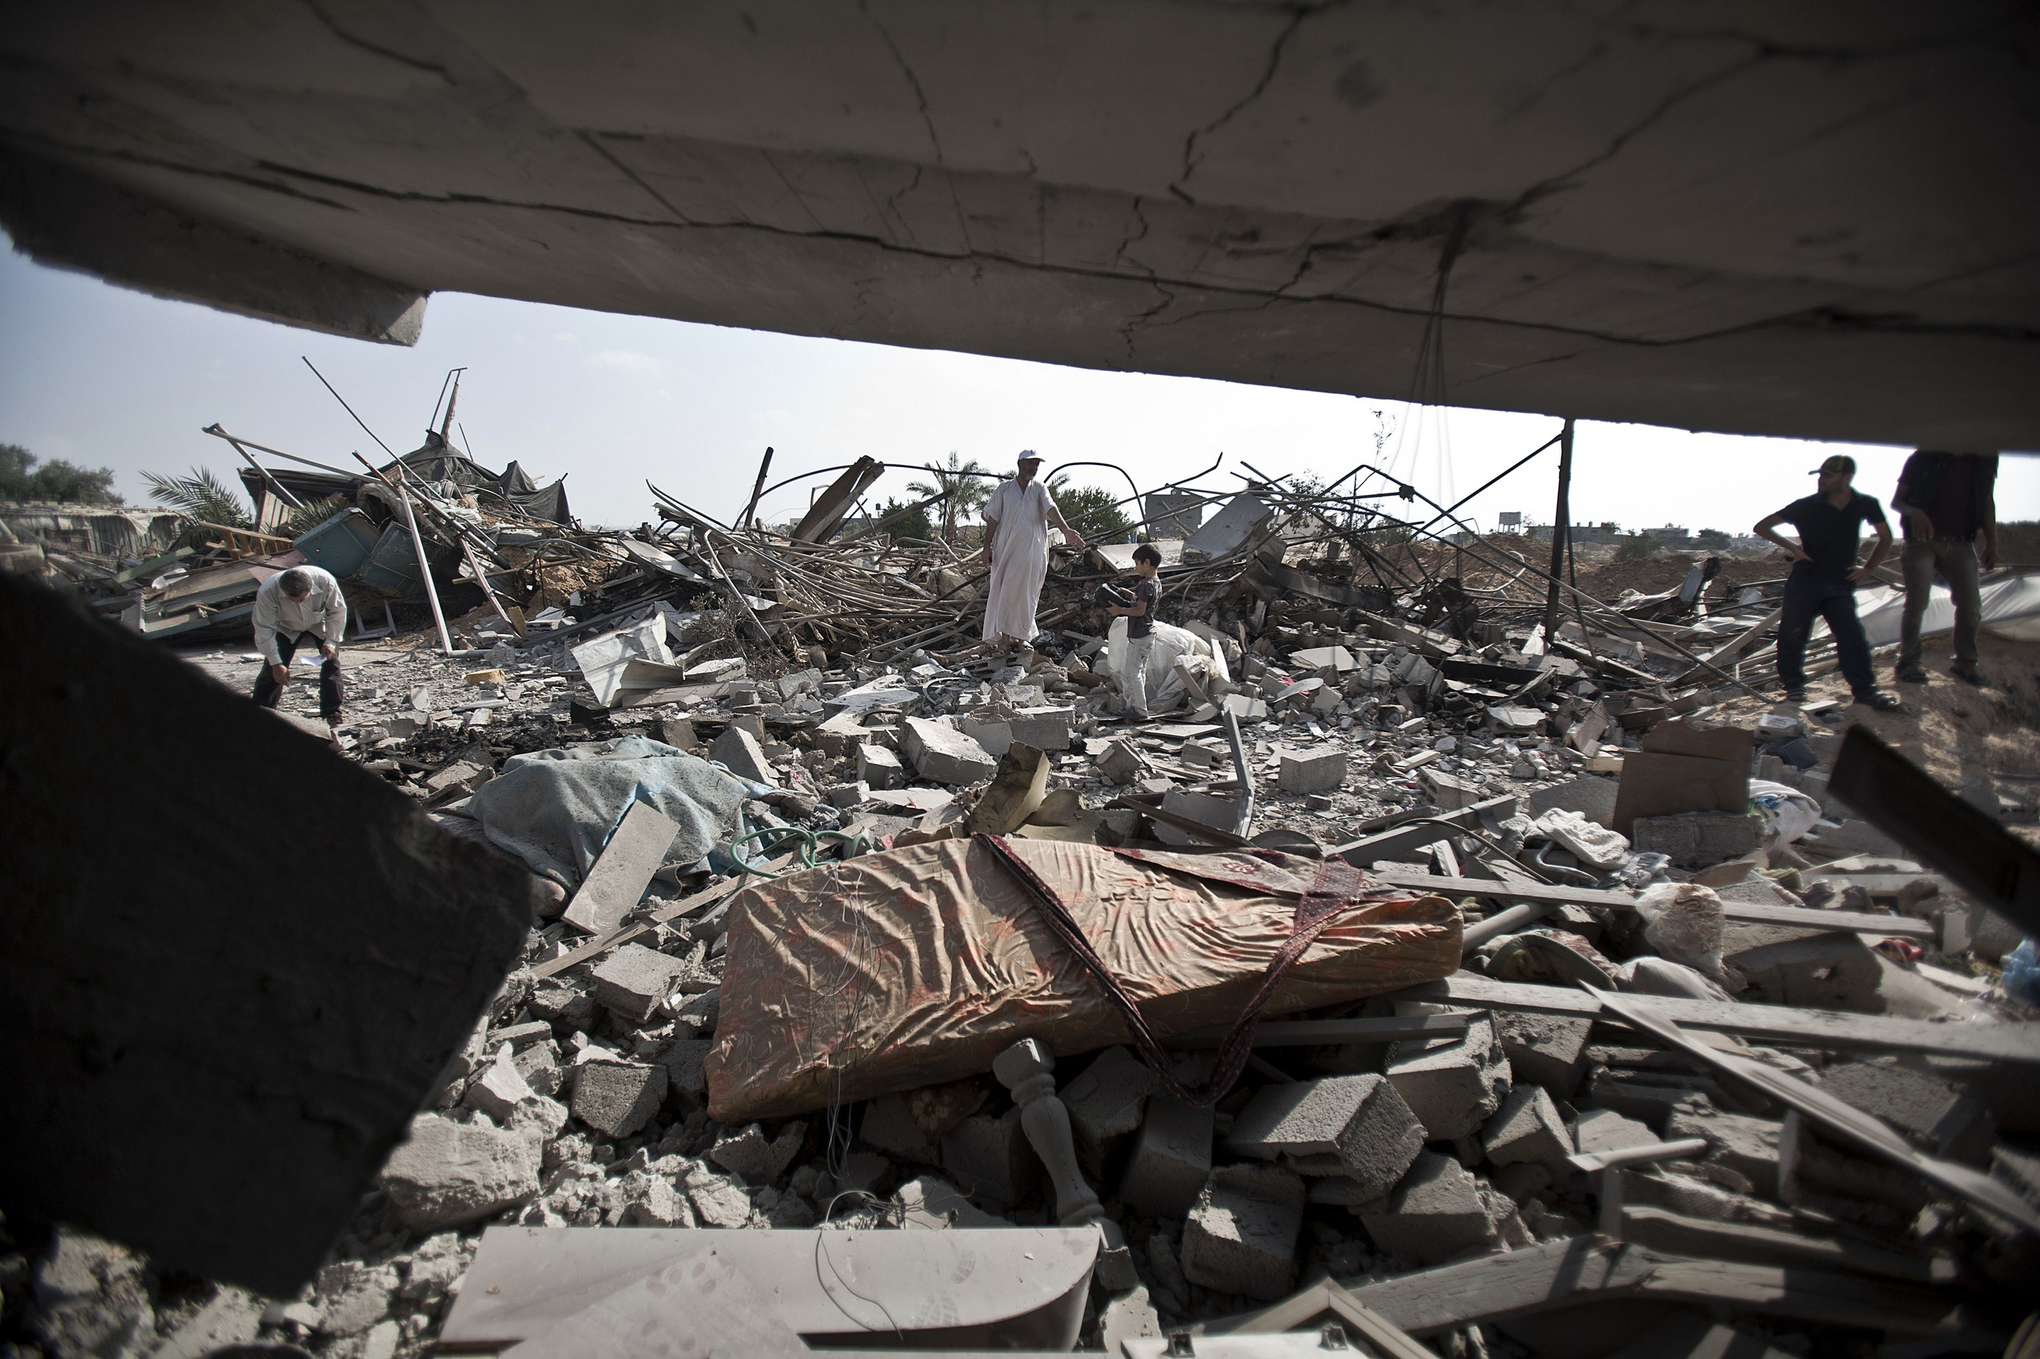 Mattress_in_Rafah_Gaza_Rubble.jpg